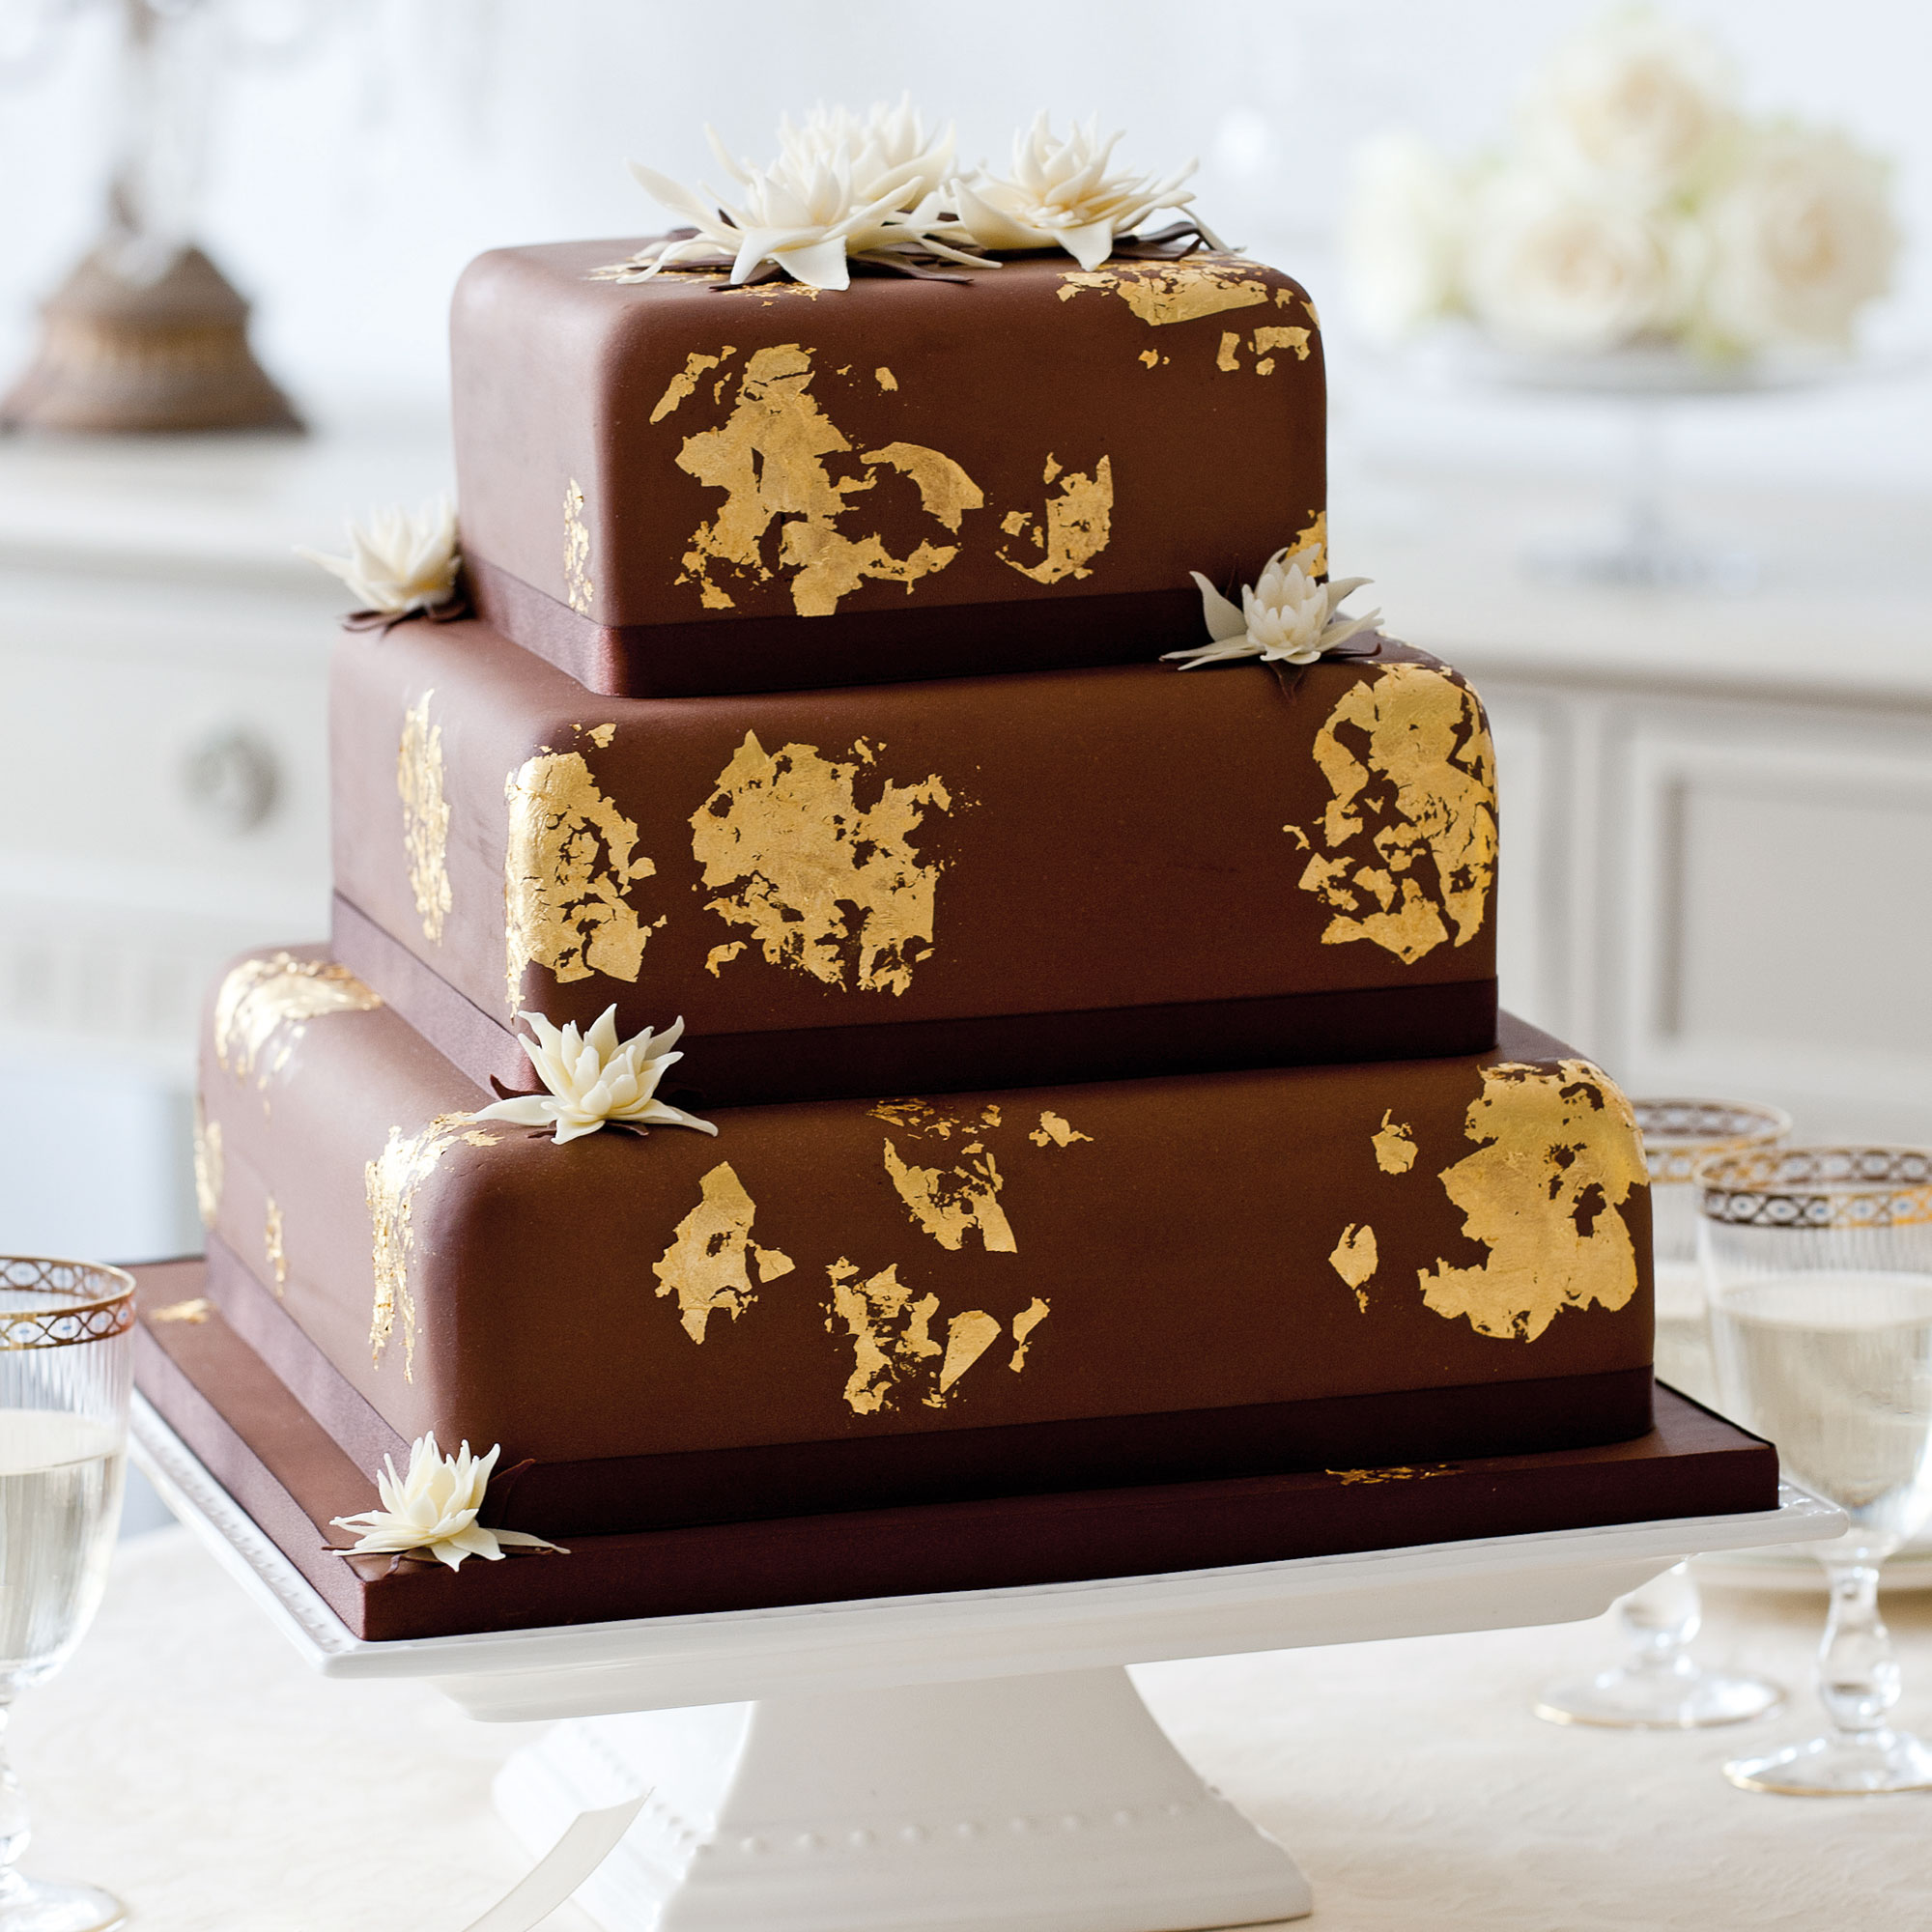 Easy Ways To Decorate A Cake At Home Midnight Lotus Wedding Cake Woman And Home